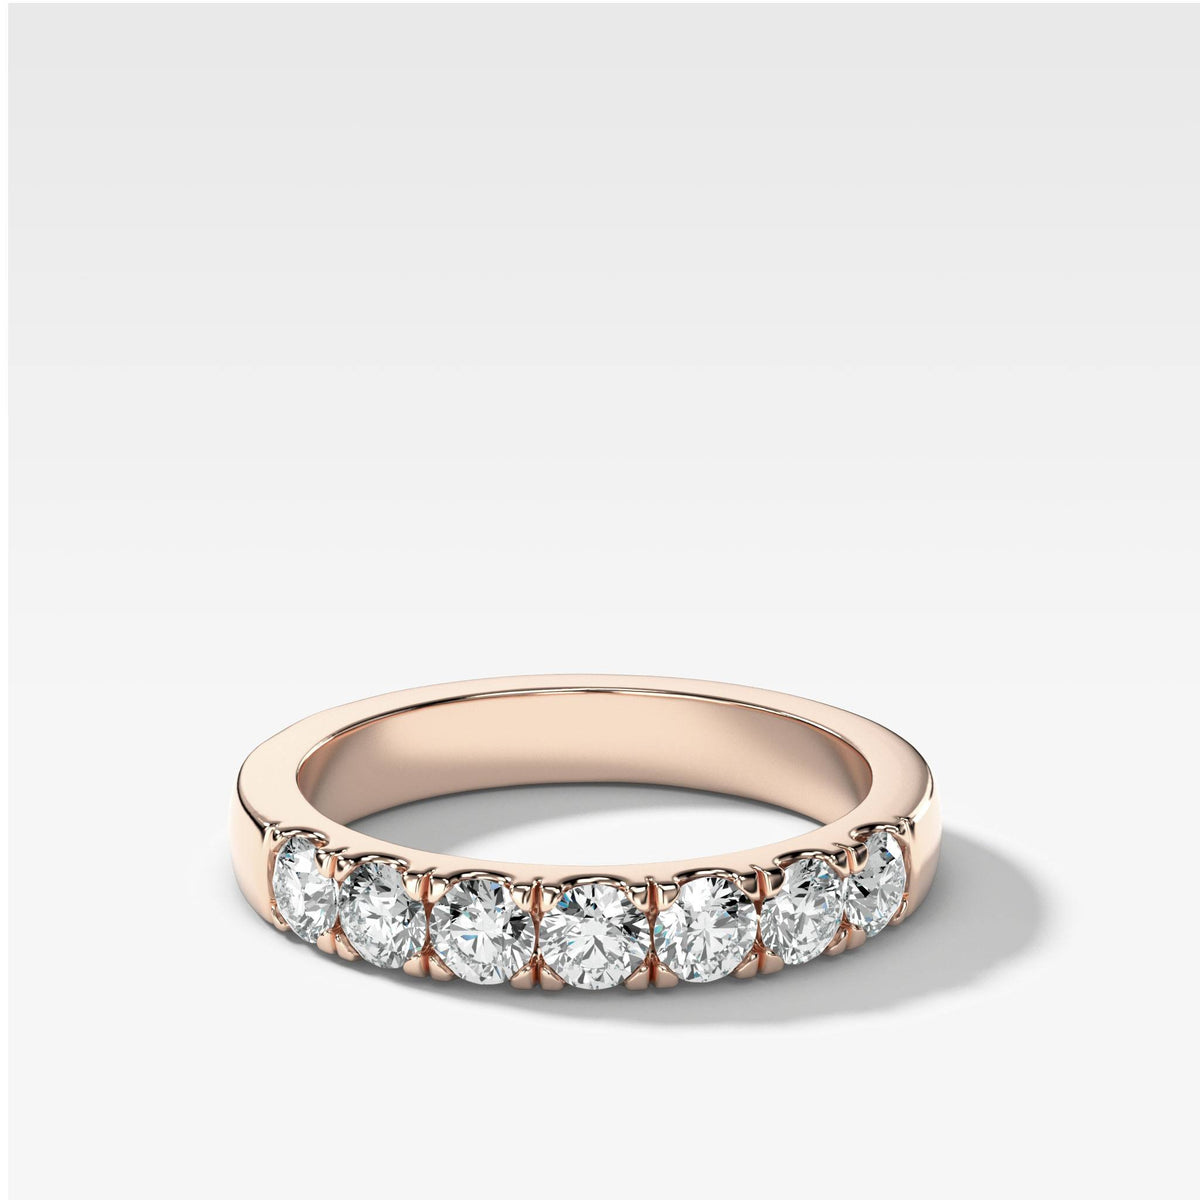 Jumbo Pave Diamond Wedding Band in Rose Gold by Good Stone